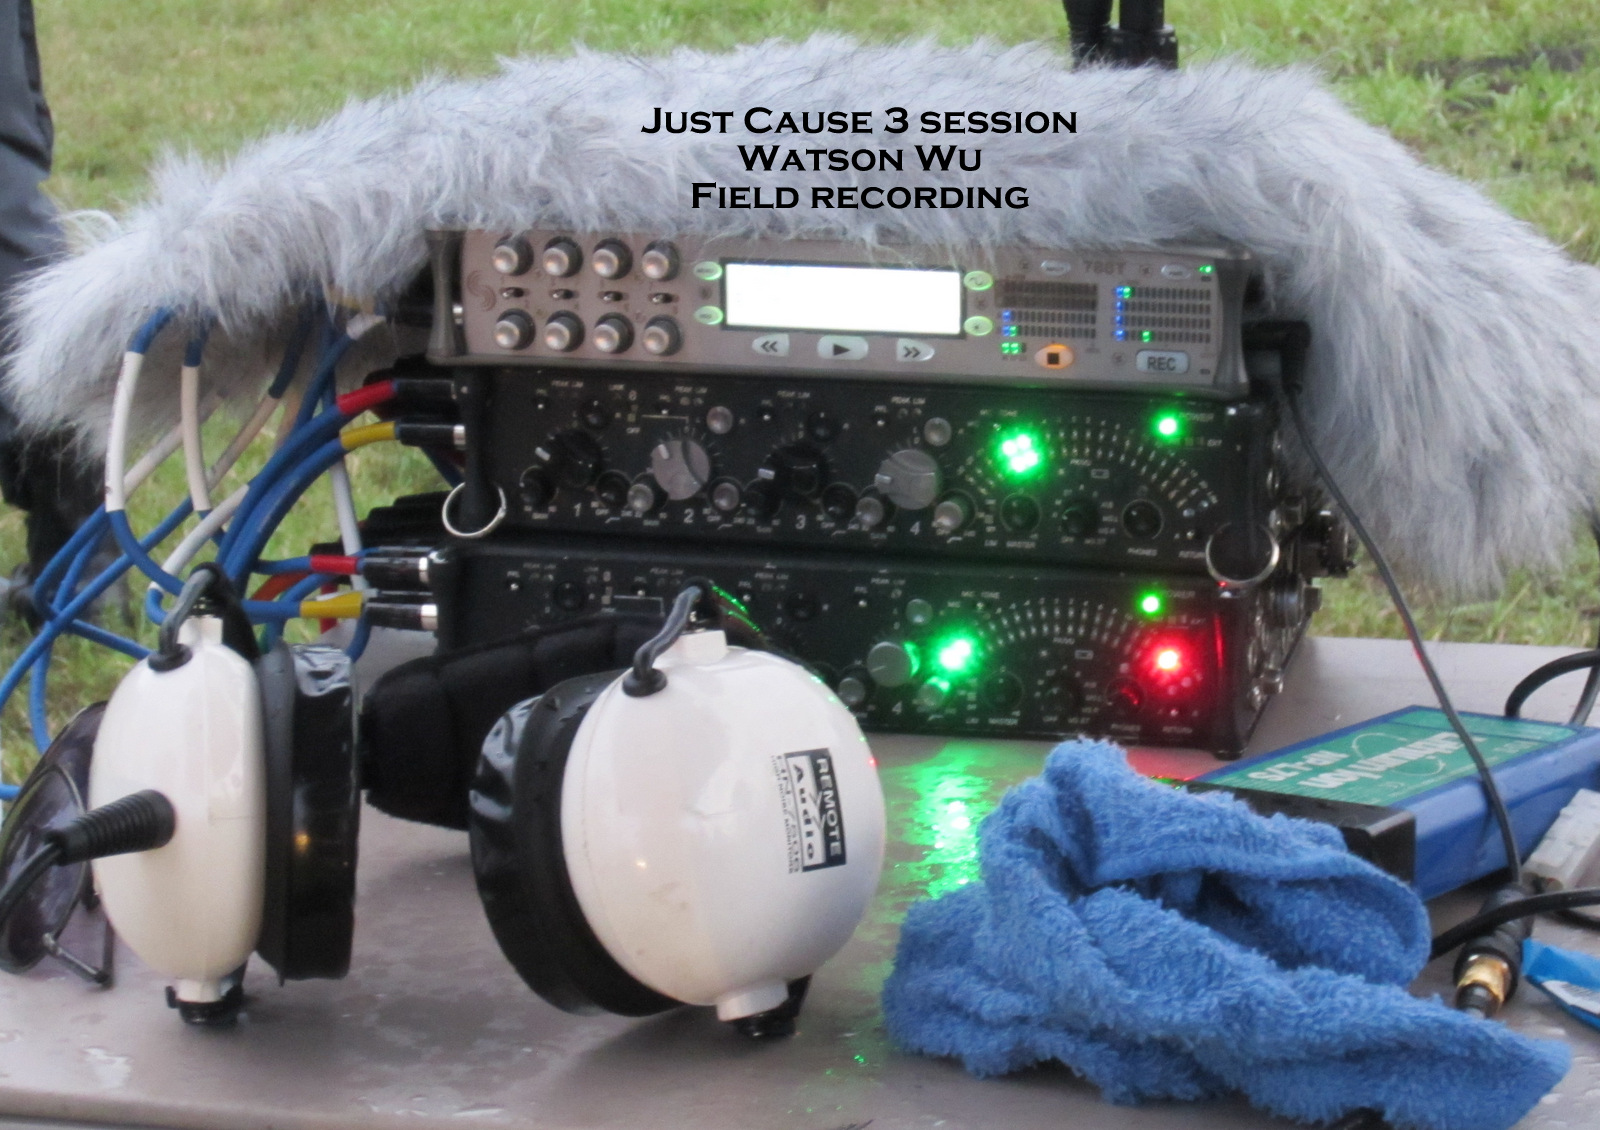 Field Recording Gear: Sound Devices 788T-SSD 8 track recorder, two 442 field mixers, and Remote Audio super headphones. The Rode Dead Wombat (fur) was used as protection from light rain.